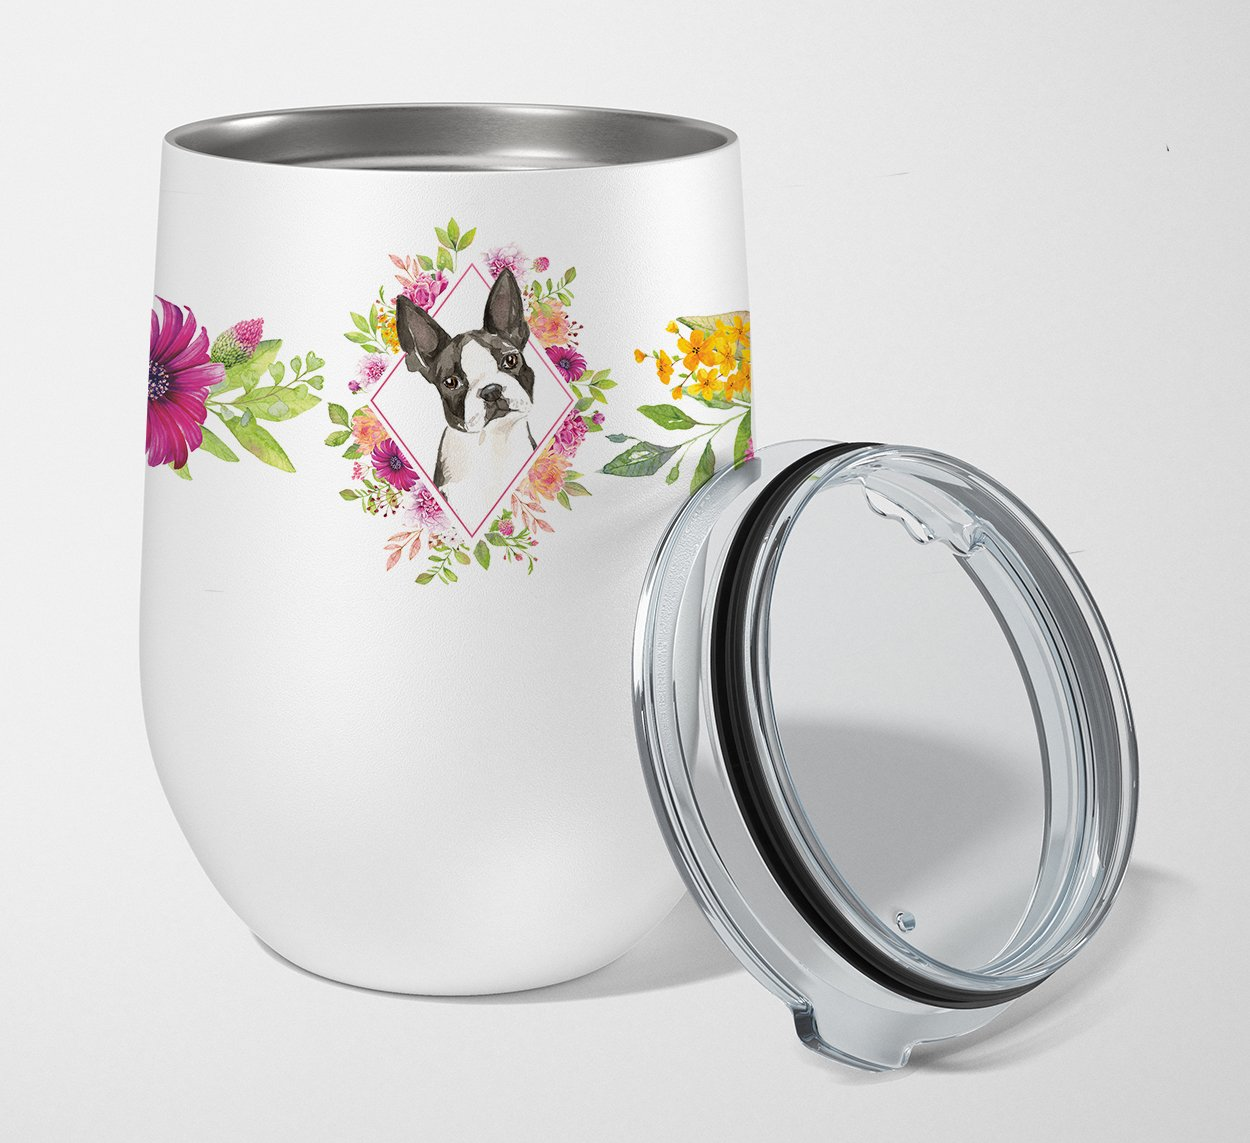 Boston Terrier Pink Flowers Stainless Steel 12 oz Stemless Wine Glass CK4257TBL12 by Caroline's Treasures